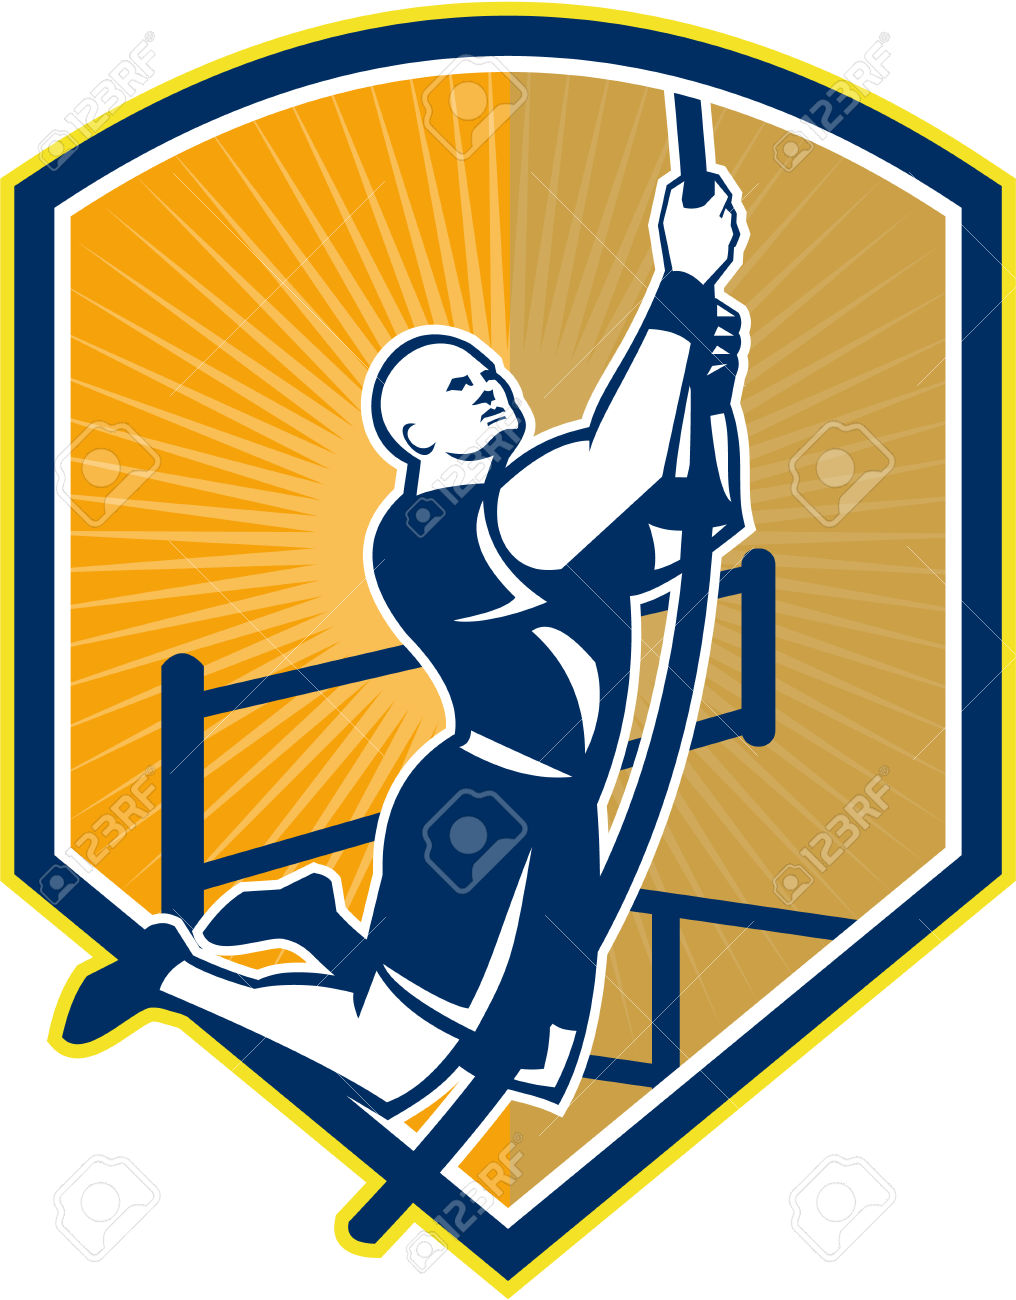 Illustration Of A Crossfit Athlete Body Weight Exercise Rope.